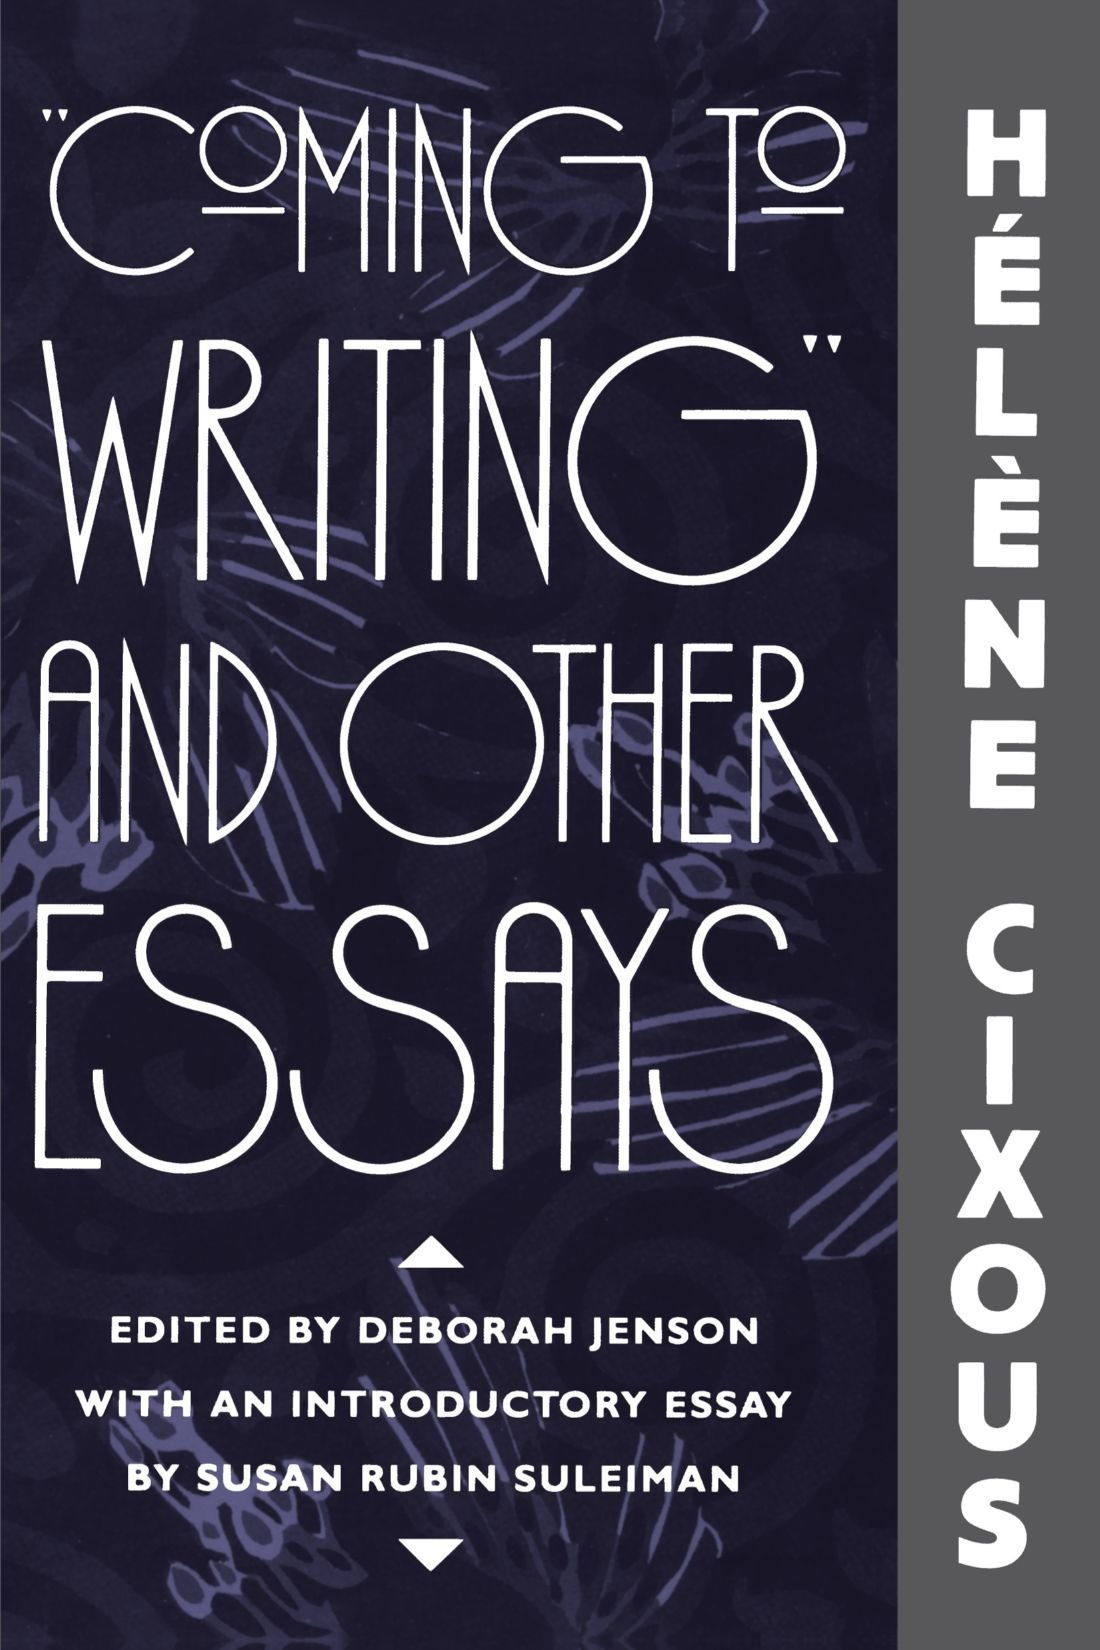 Coming-to-Writing-and-Other-Essays-by-Hélène-Cixous